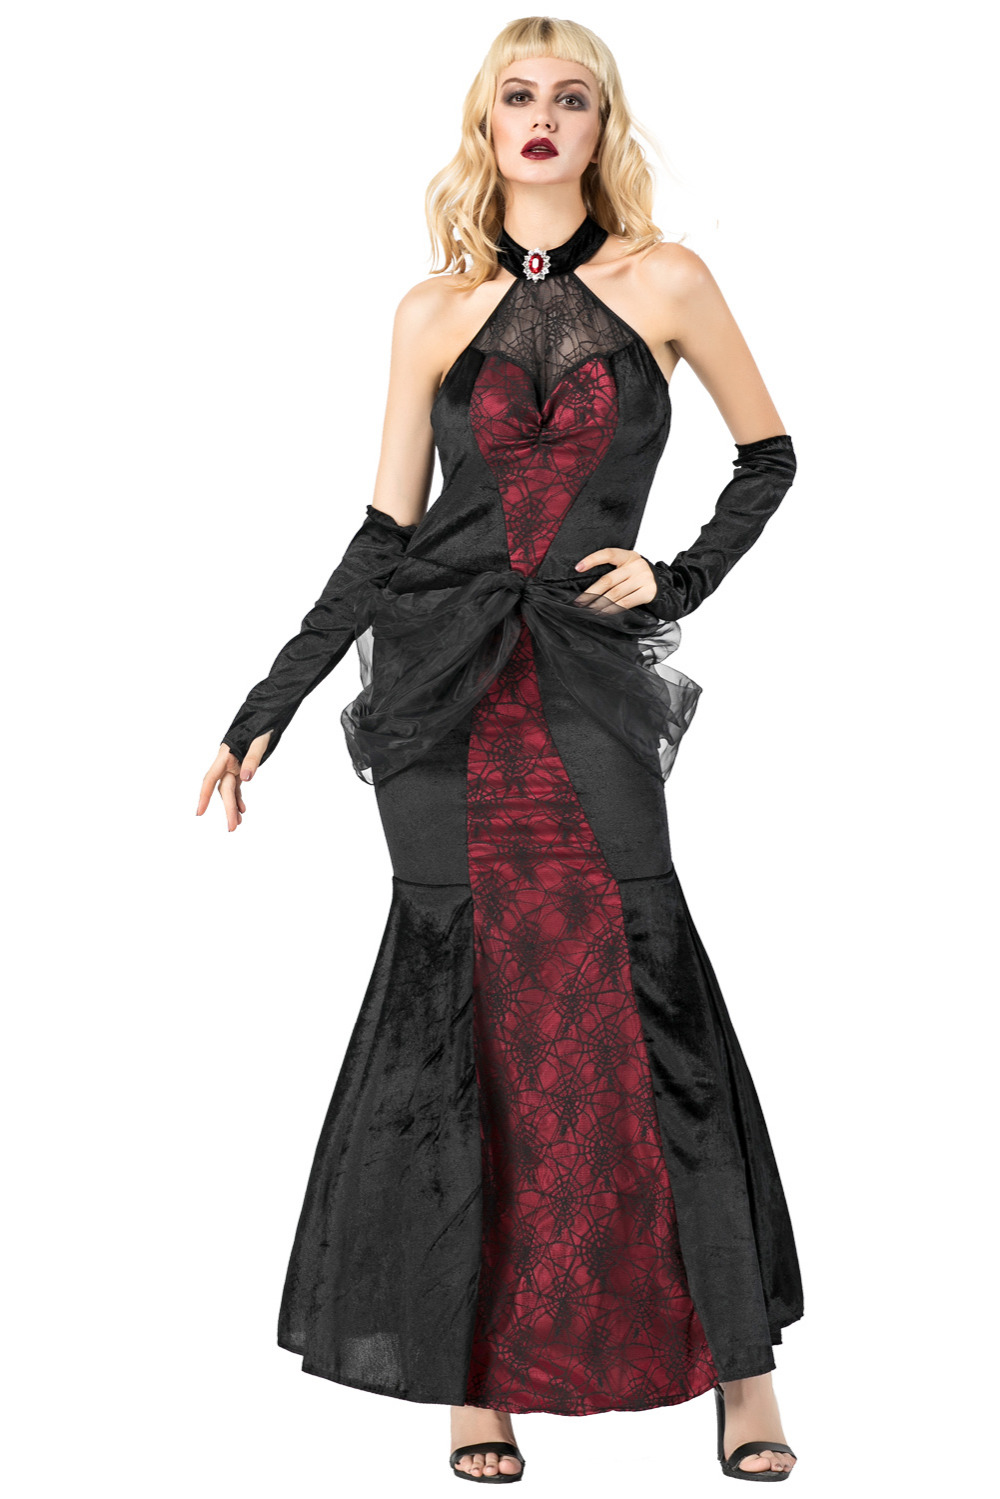 Queen Witch Dress Cosplay Costumes Adult Women fancy Party spider dresses Halloween araneid Witch Performance Dress